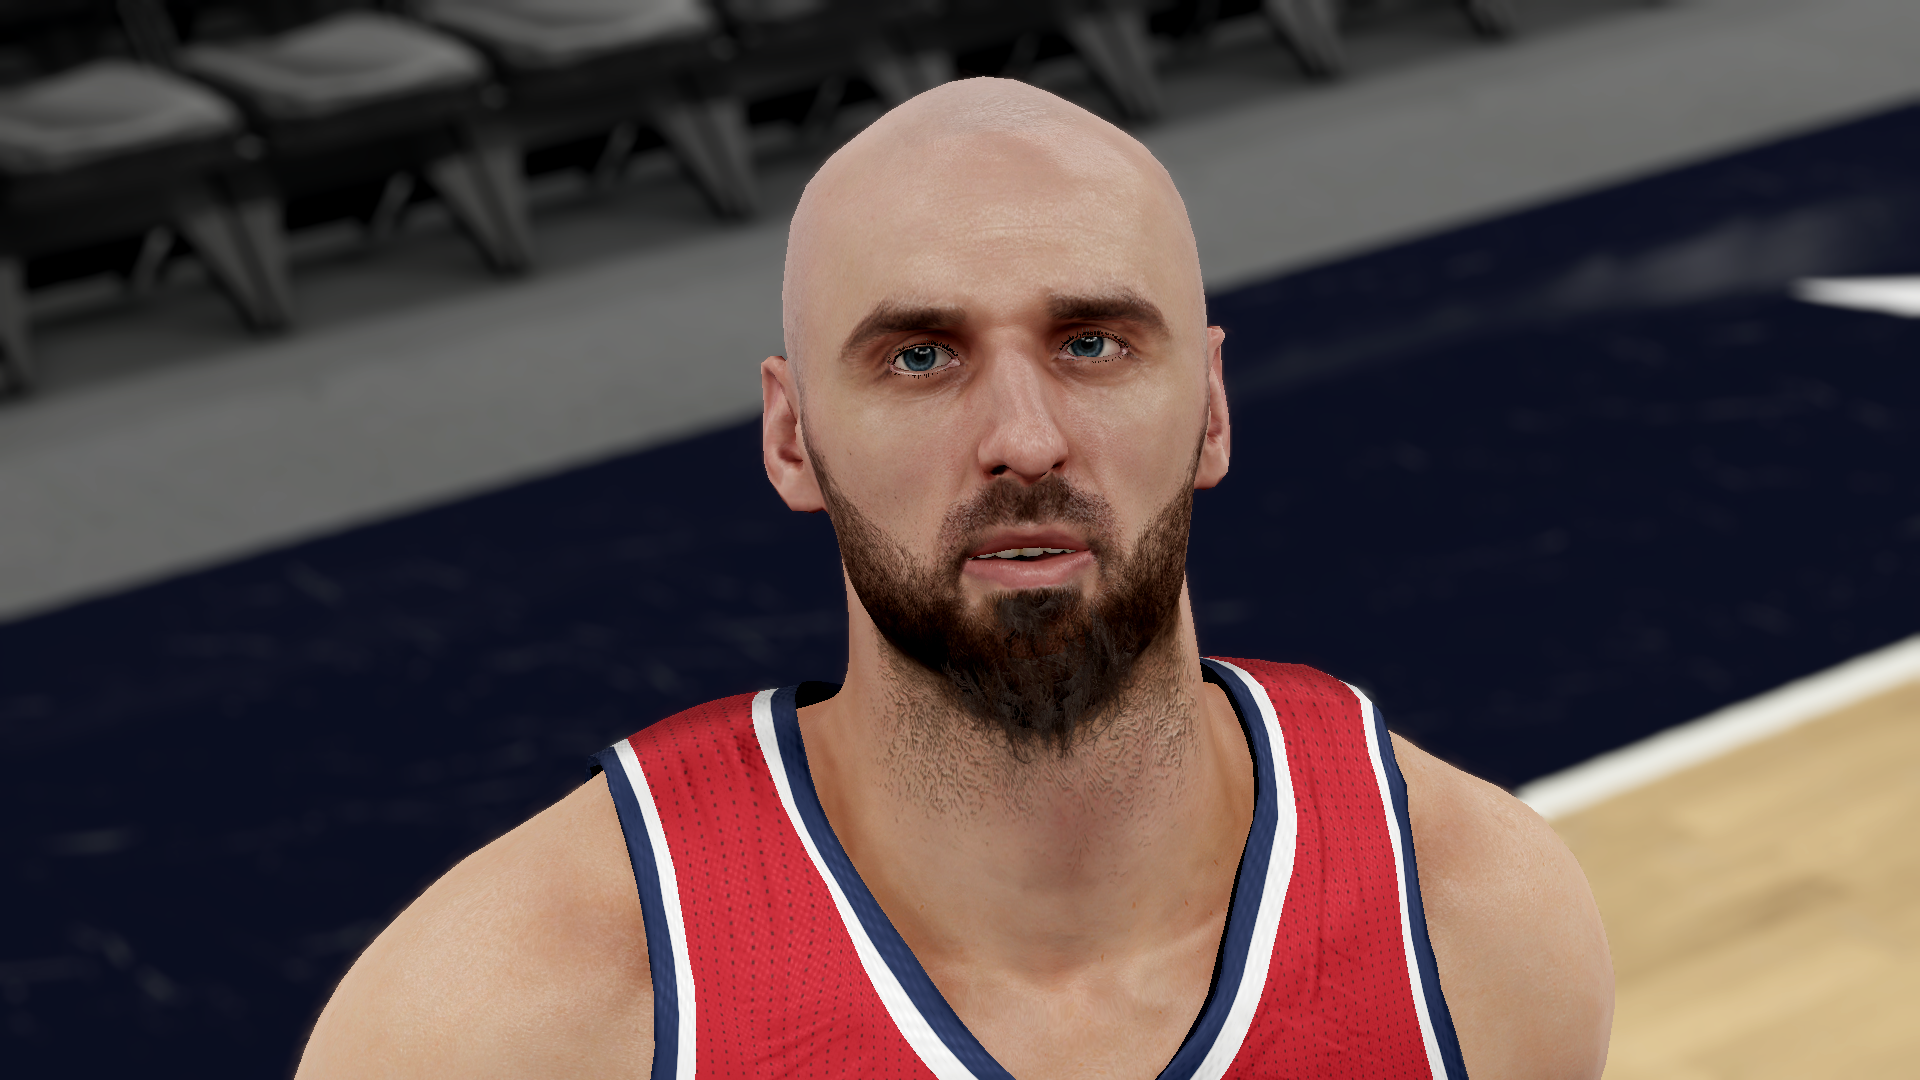 70f97ce2f3e7 screenshot for that  http   forums.nba -live.com dl mod thumbs 8280 370240 2015-12-17 00001.png